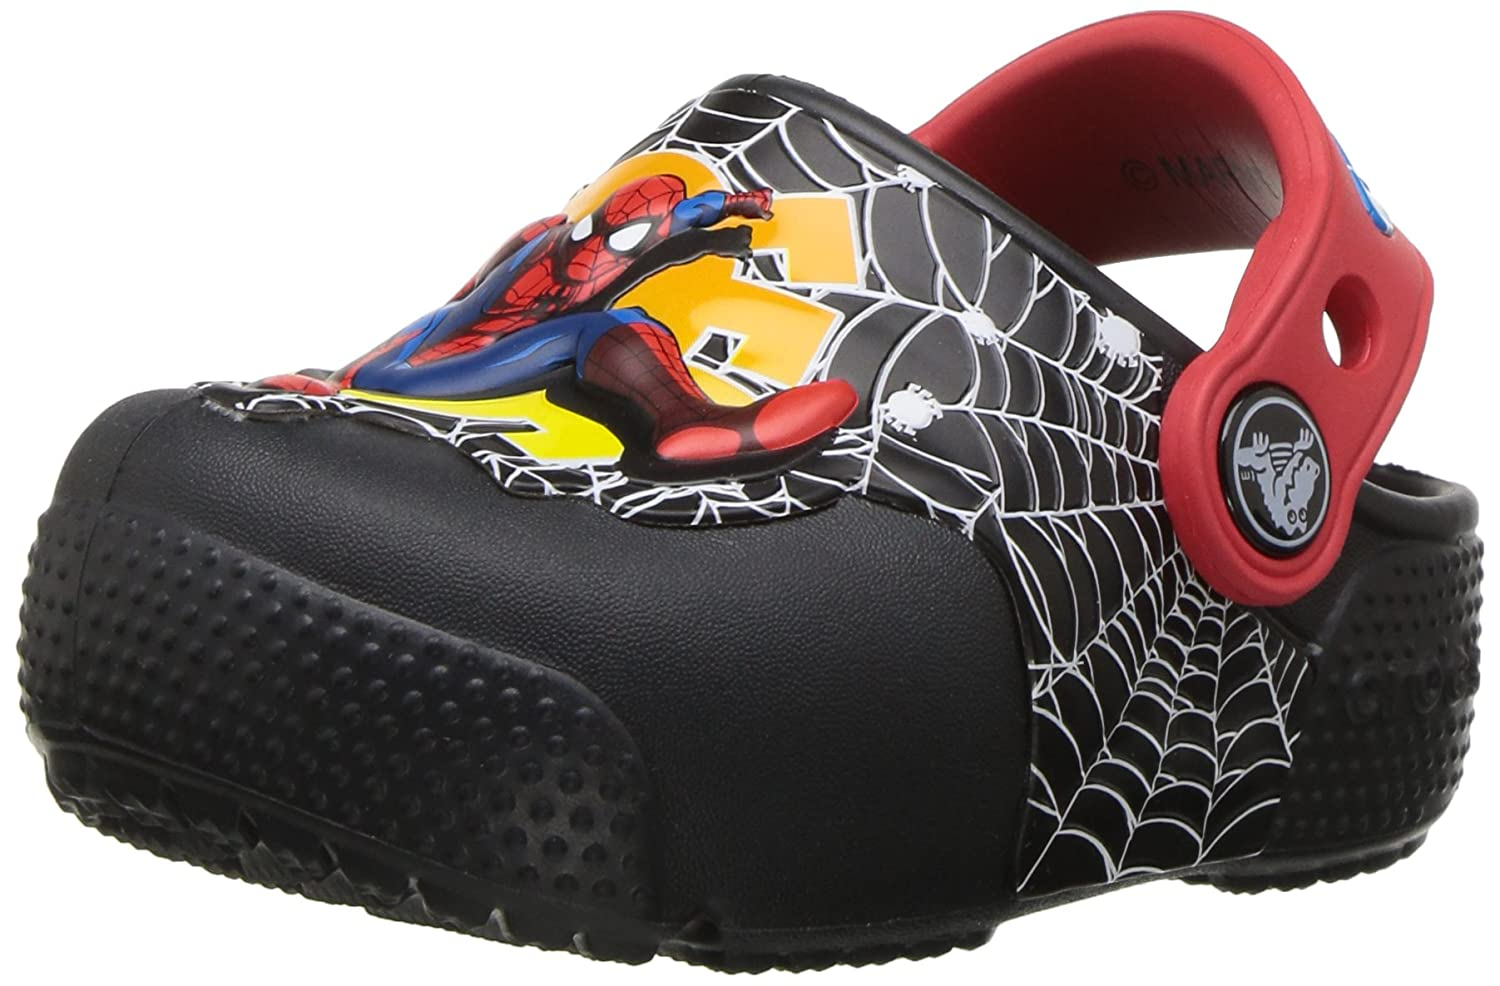 e0849b56d Amazon.com | Crocs Kids' Fun Lab Spiderman Light-Up Clog | Clogs & Mules